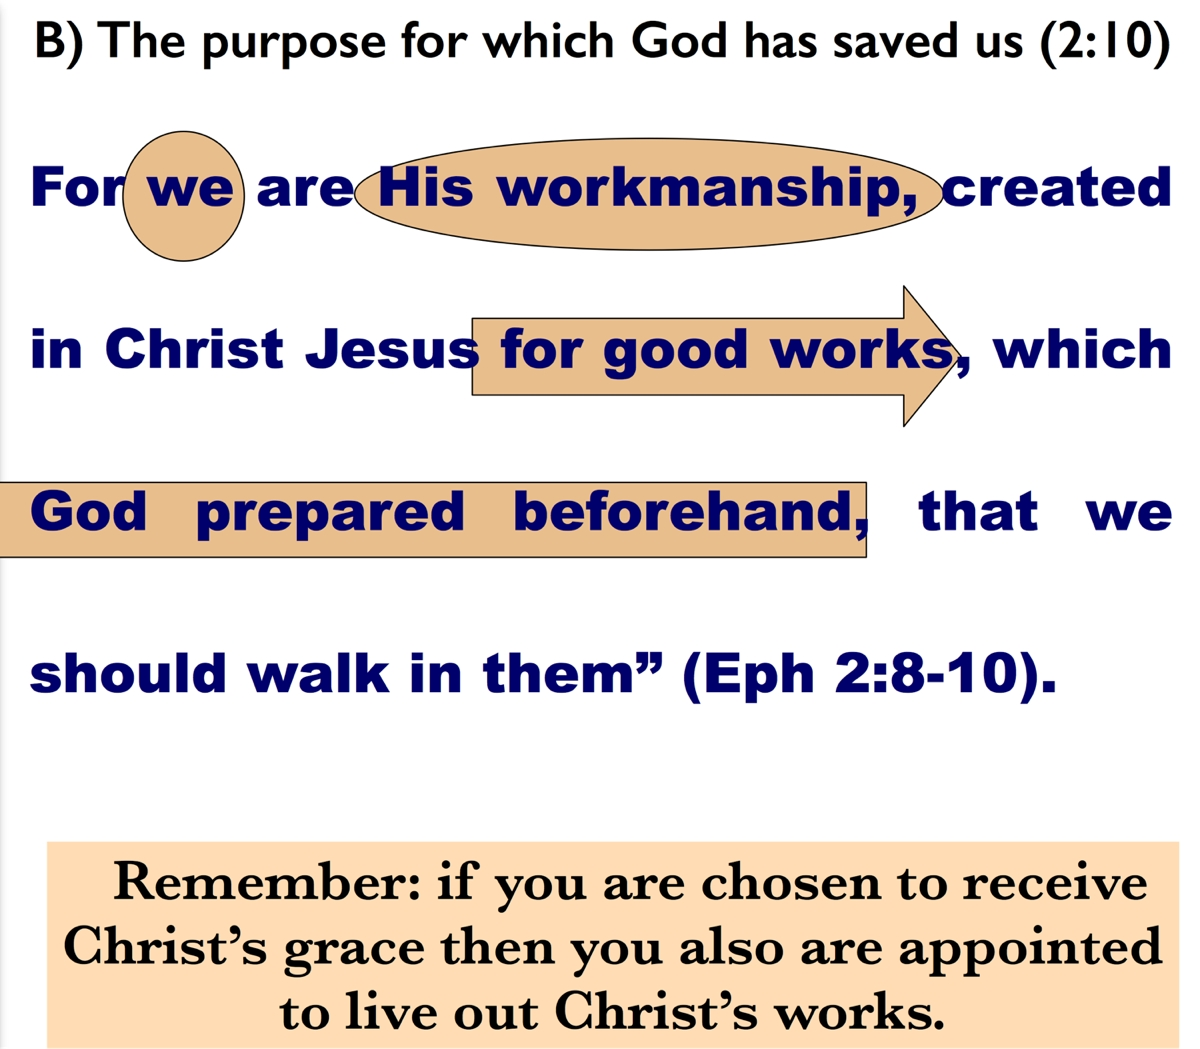 dating ephesians Ephesians theme: the glory of christ in the church author: the apostle paul (1 :1 3:1) courier: tychicus (6:21) destination and recipients: church at ephesus (located in asia minor, modern turkey) date of writing: c ad 60 – 63 place of writing: rome (paul's first roman imprisonment) main divisions: 1.